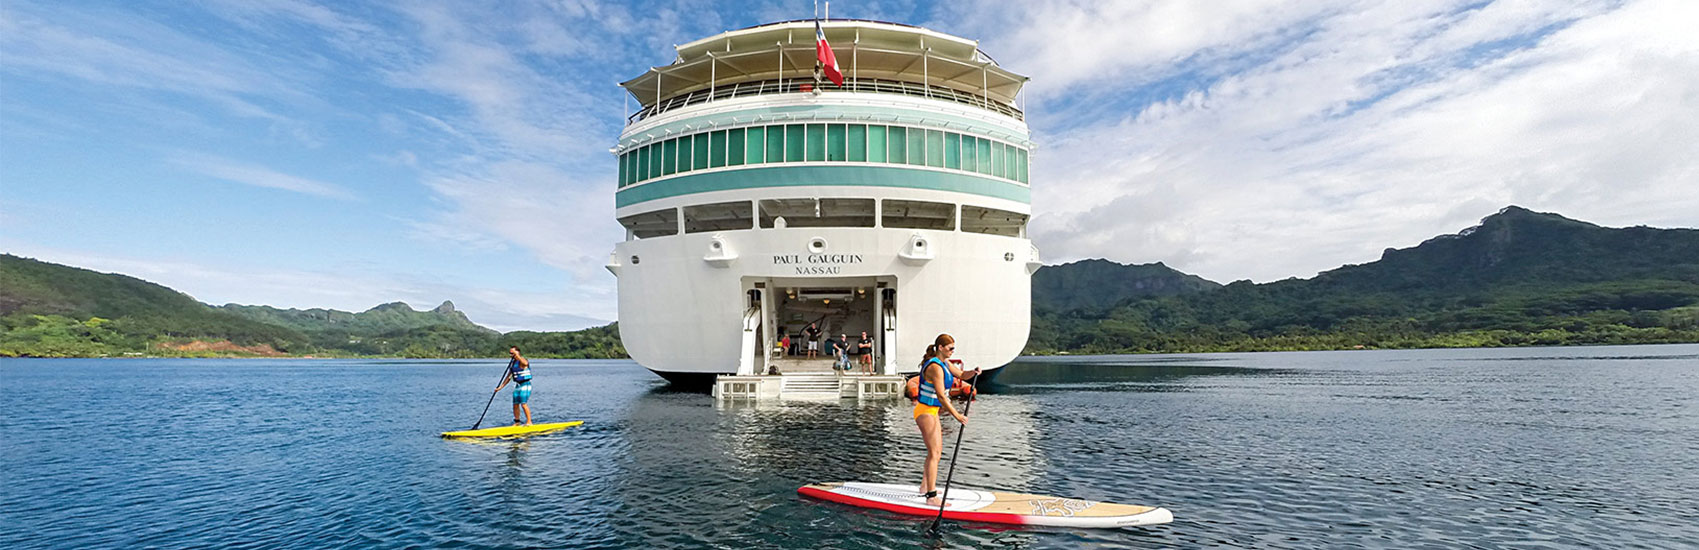 Discover Small Ship Luxury with Paul Gauguin Cruises 1